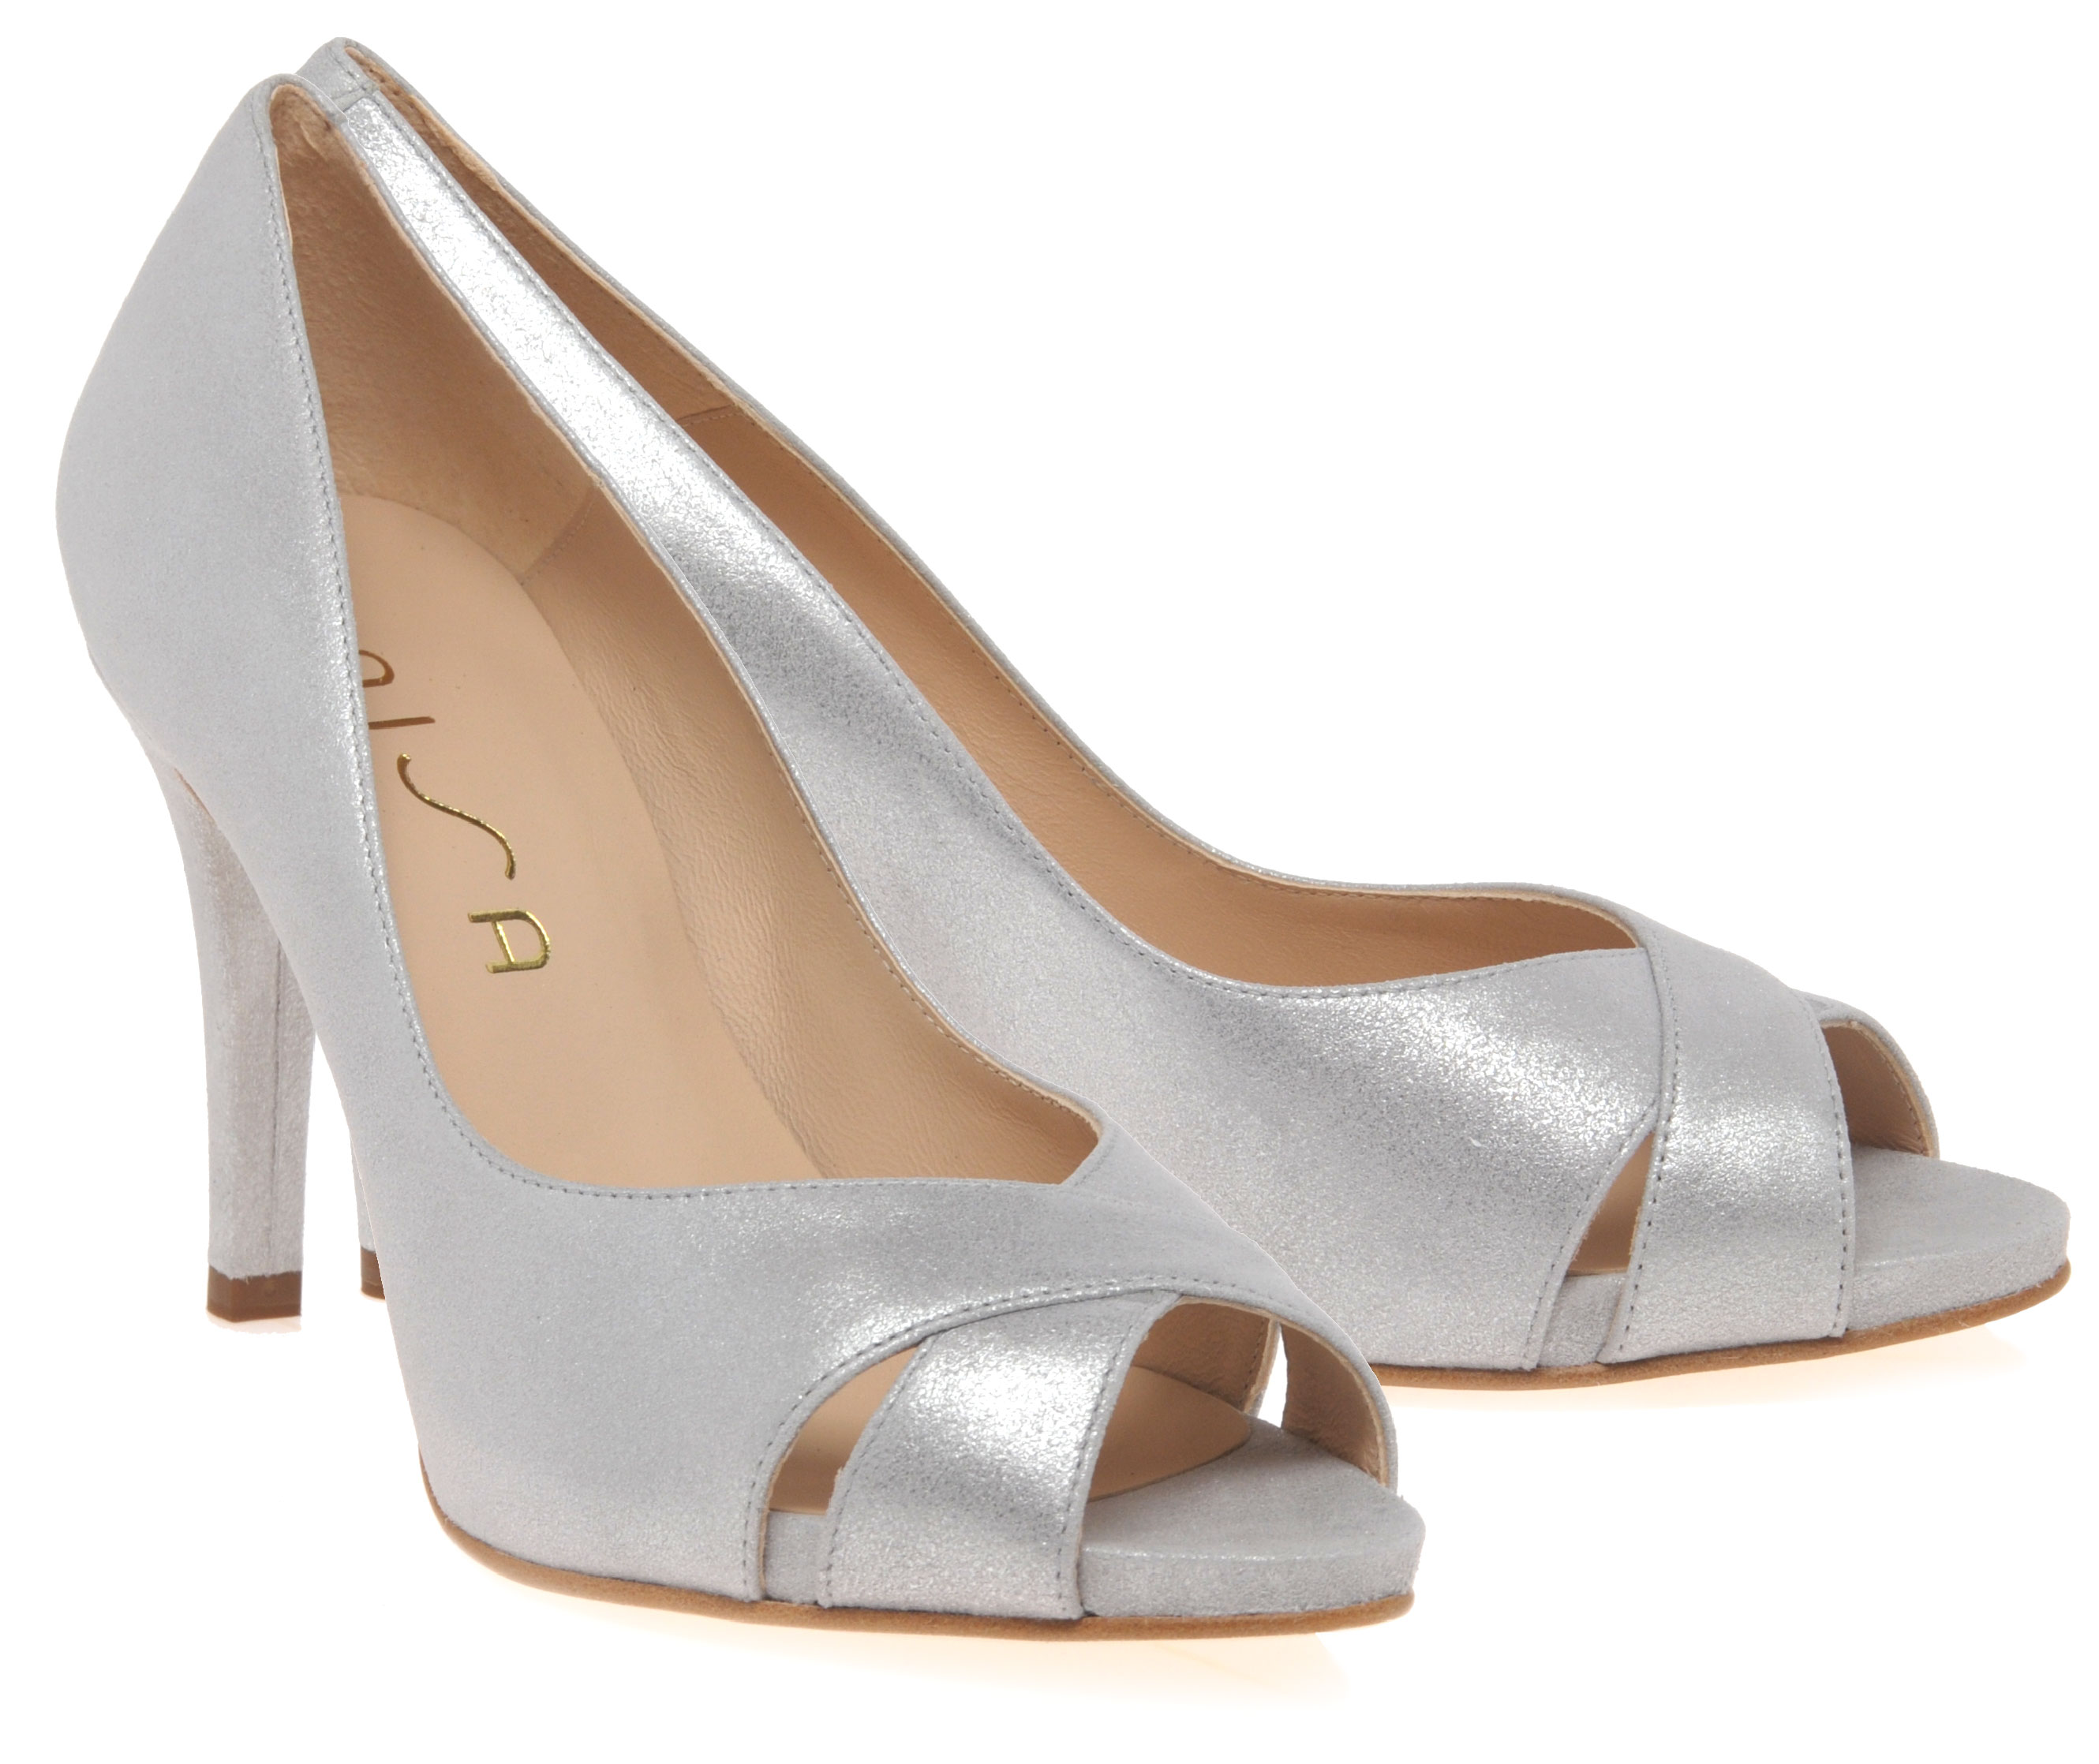 'i Wedding Swoon ShoesHome Blog Do' These Worthy › To Say EDIYHW92